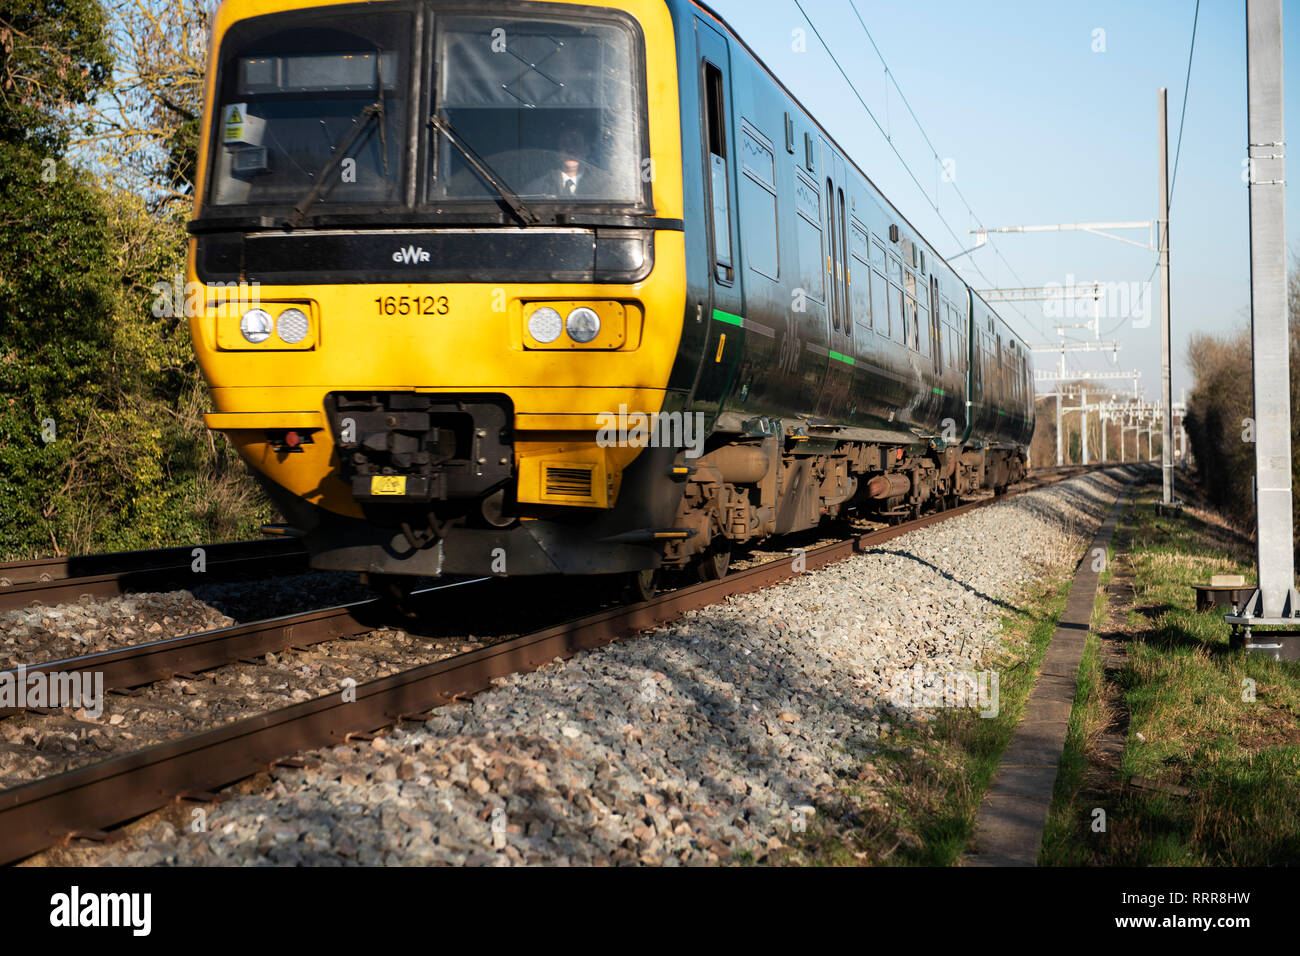 Train lines and trains, UK, local train service, GWR, Class 165/1 Networker Turbo - Stock Image